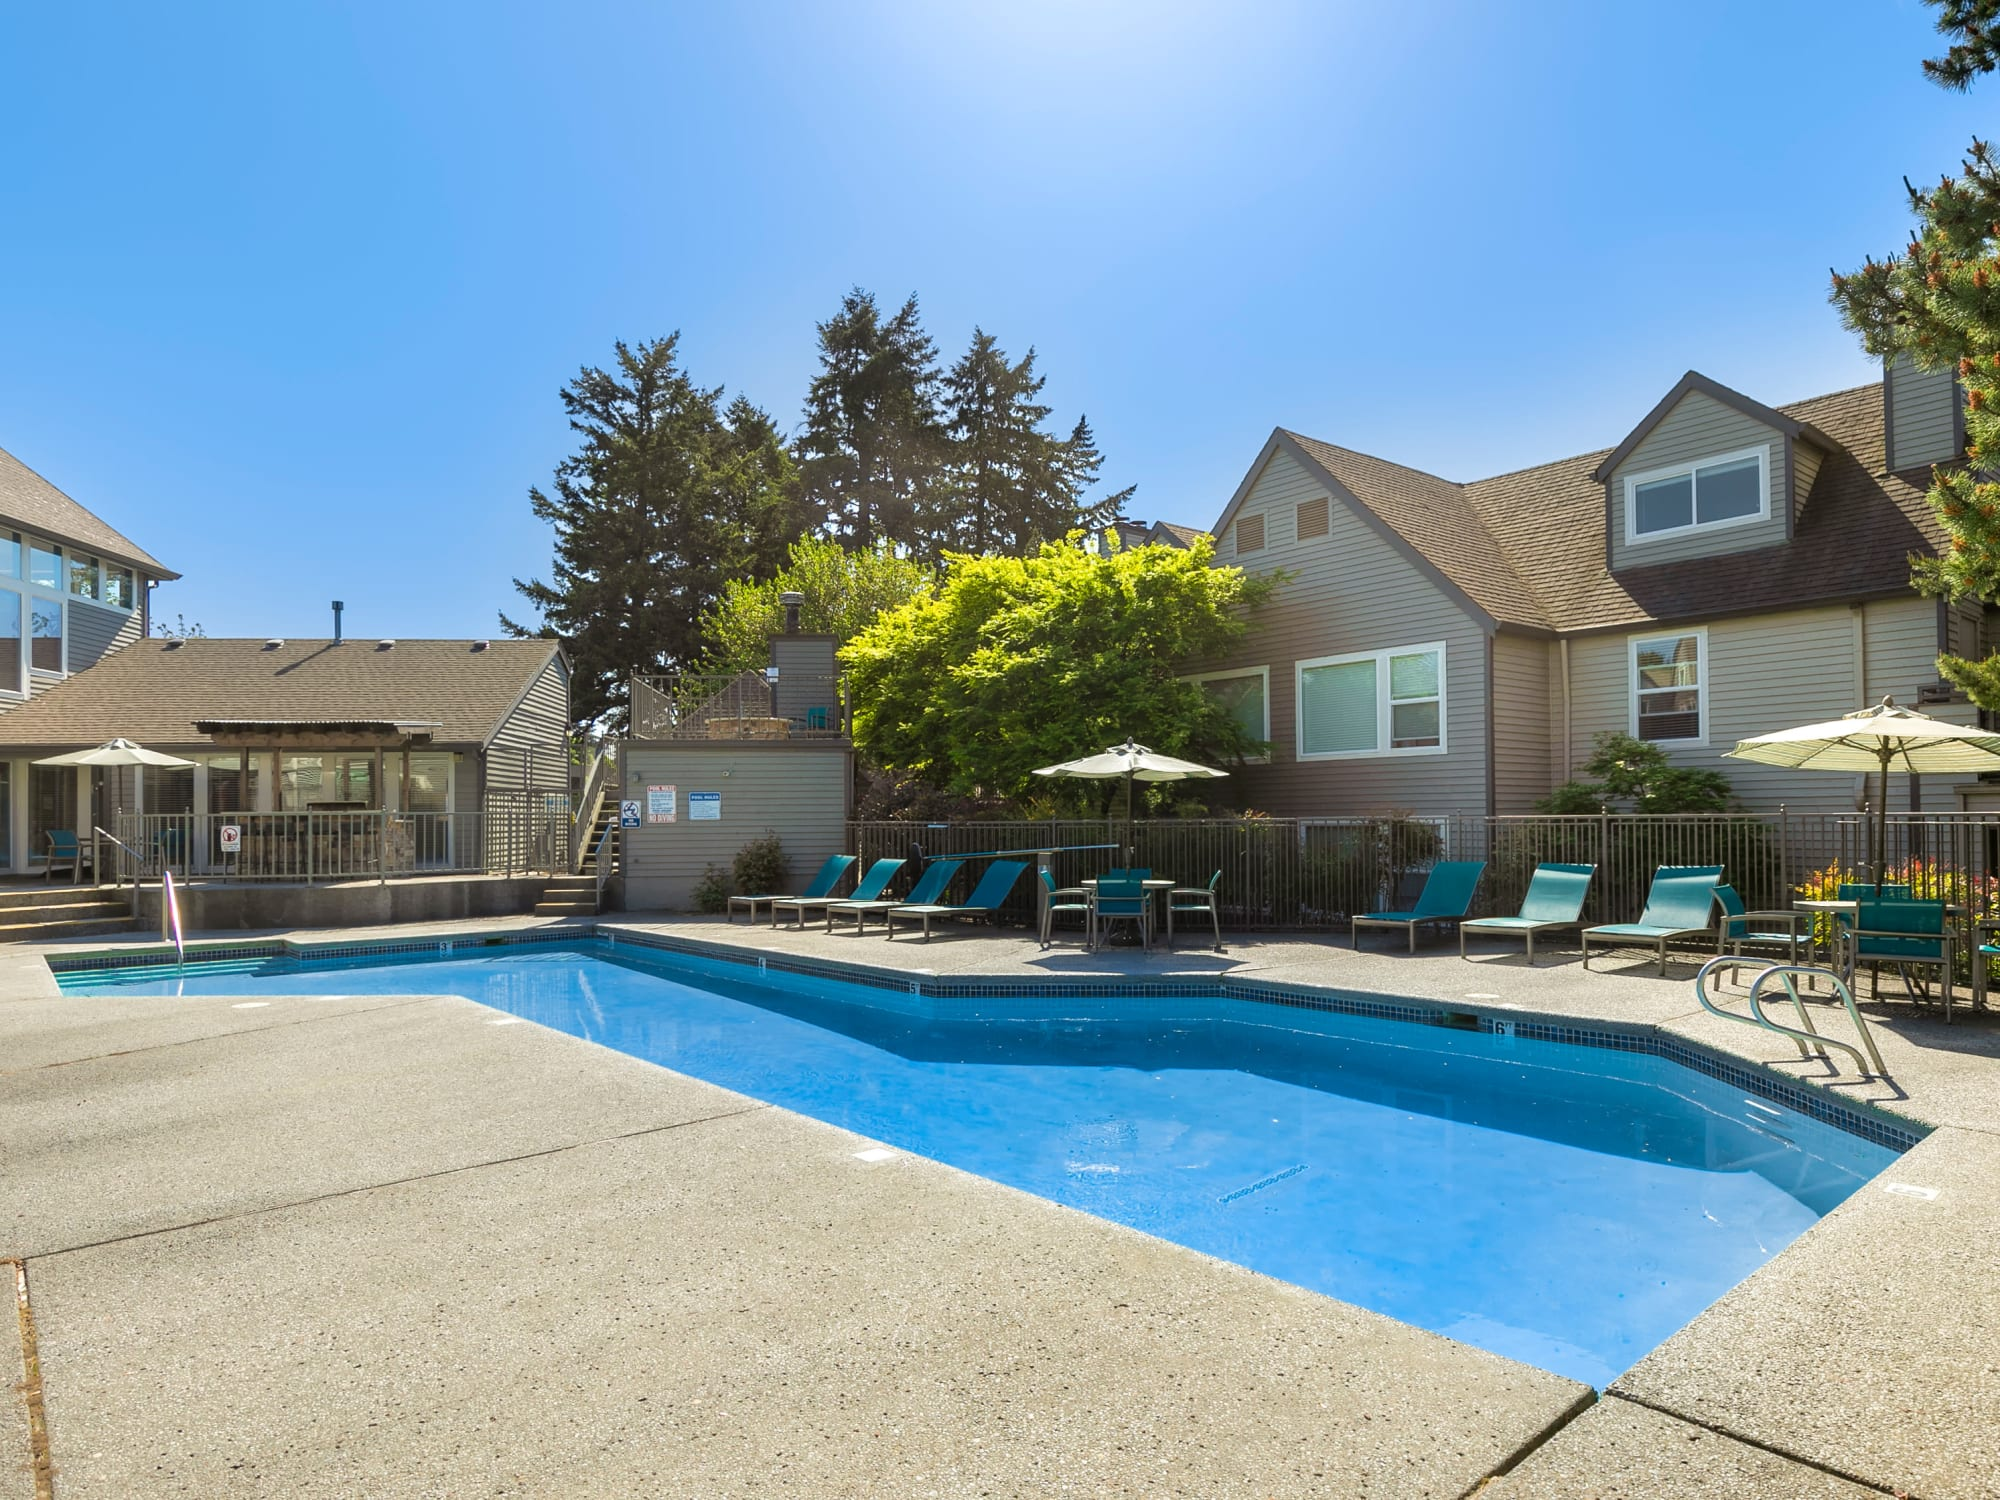 Poolside view with lounge area in Vancouver, WA